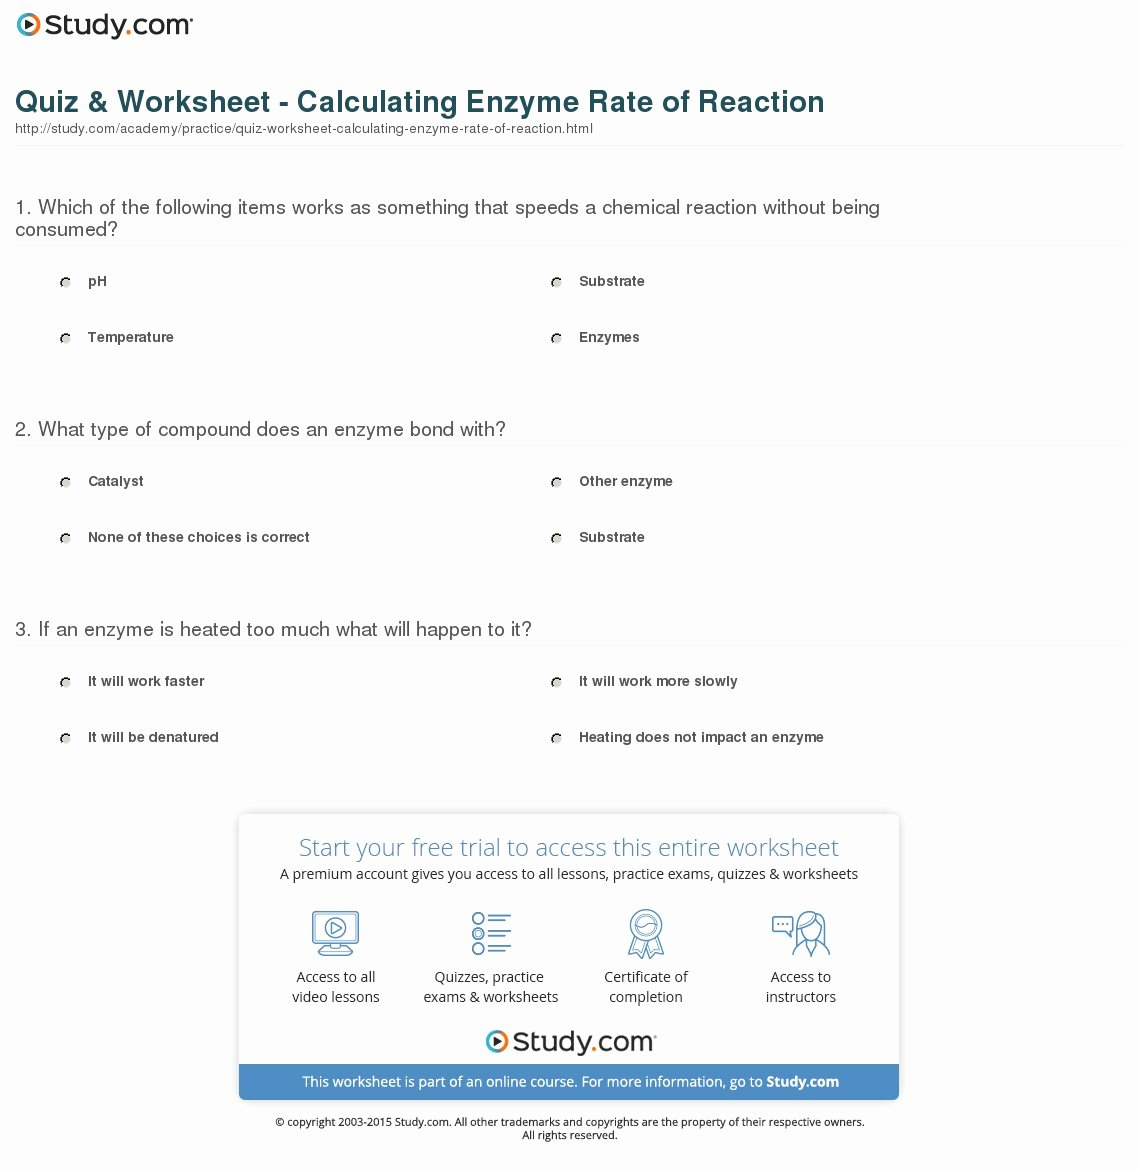 Enzyme Reactions Worksheet Answers Best Of Quiz & Worksheet Calculating Enzyme Rate Of Reaction